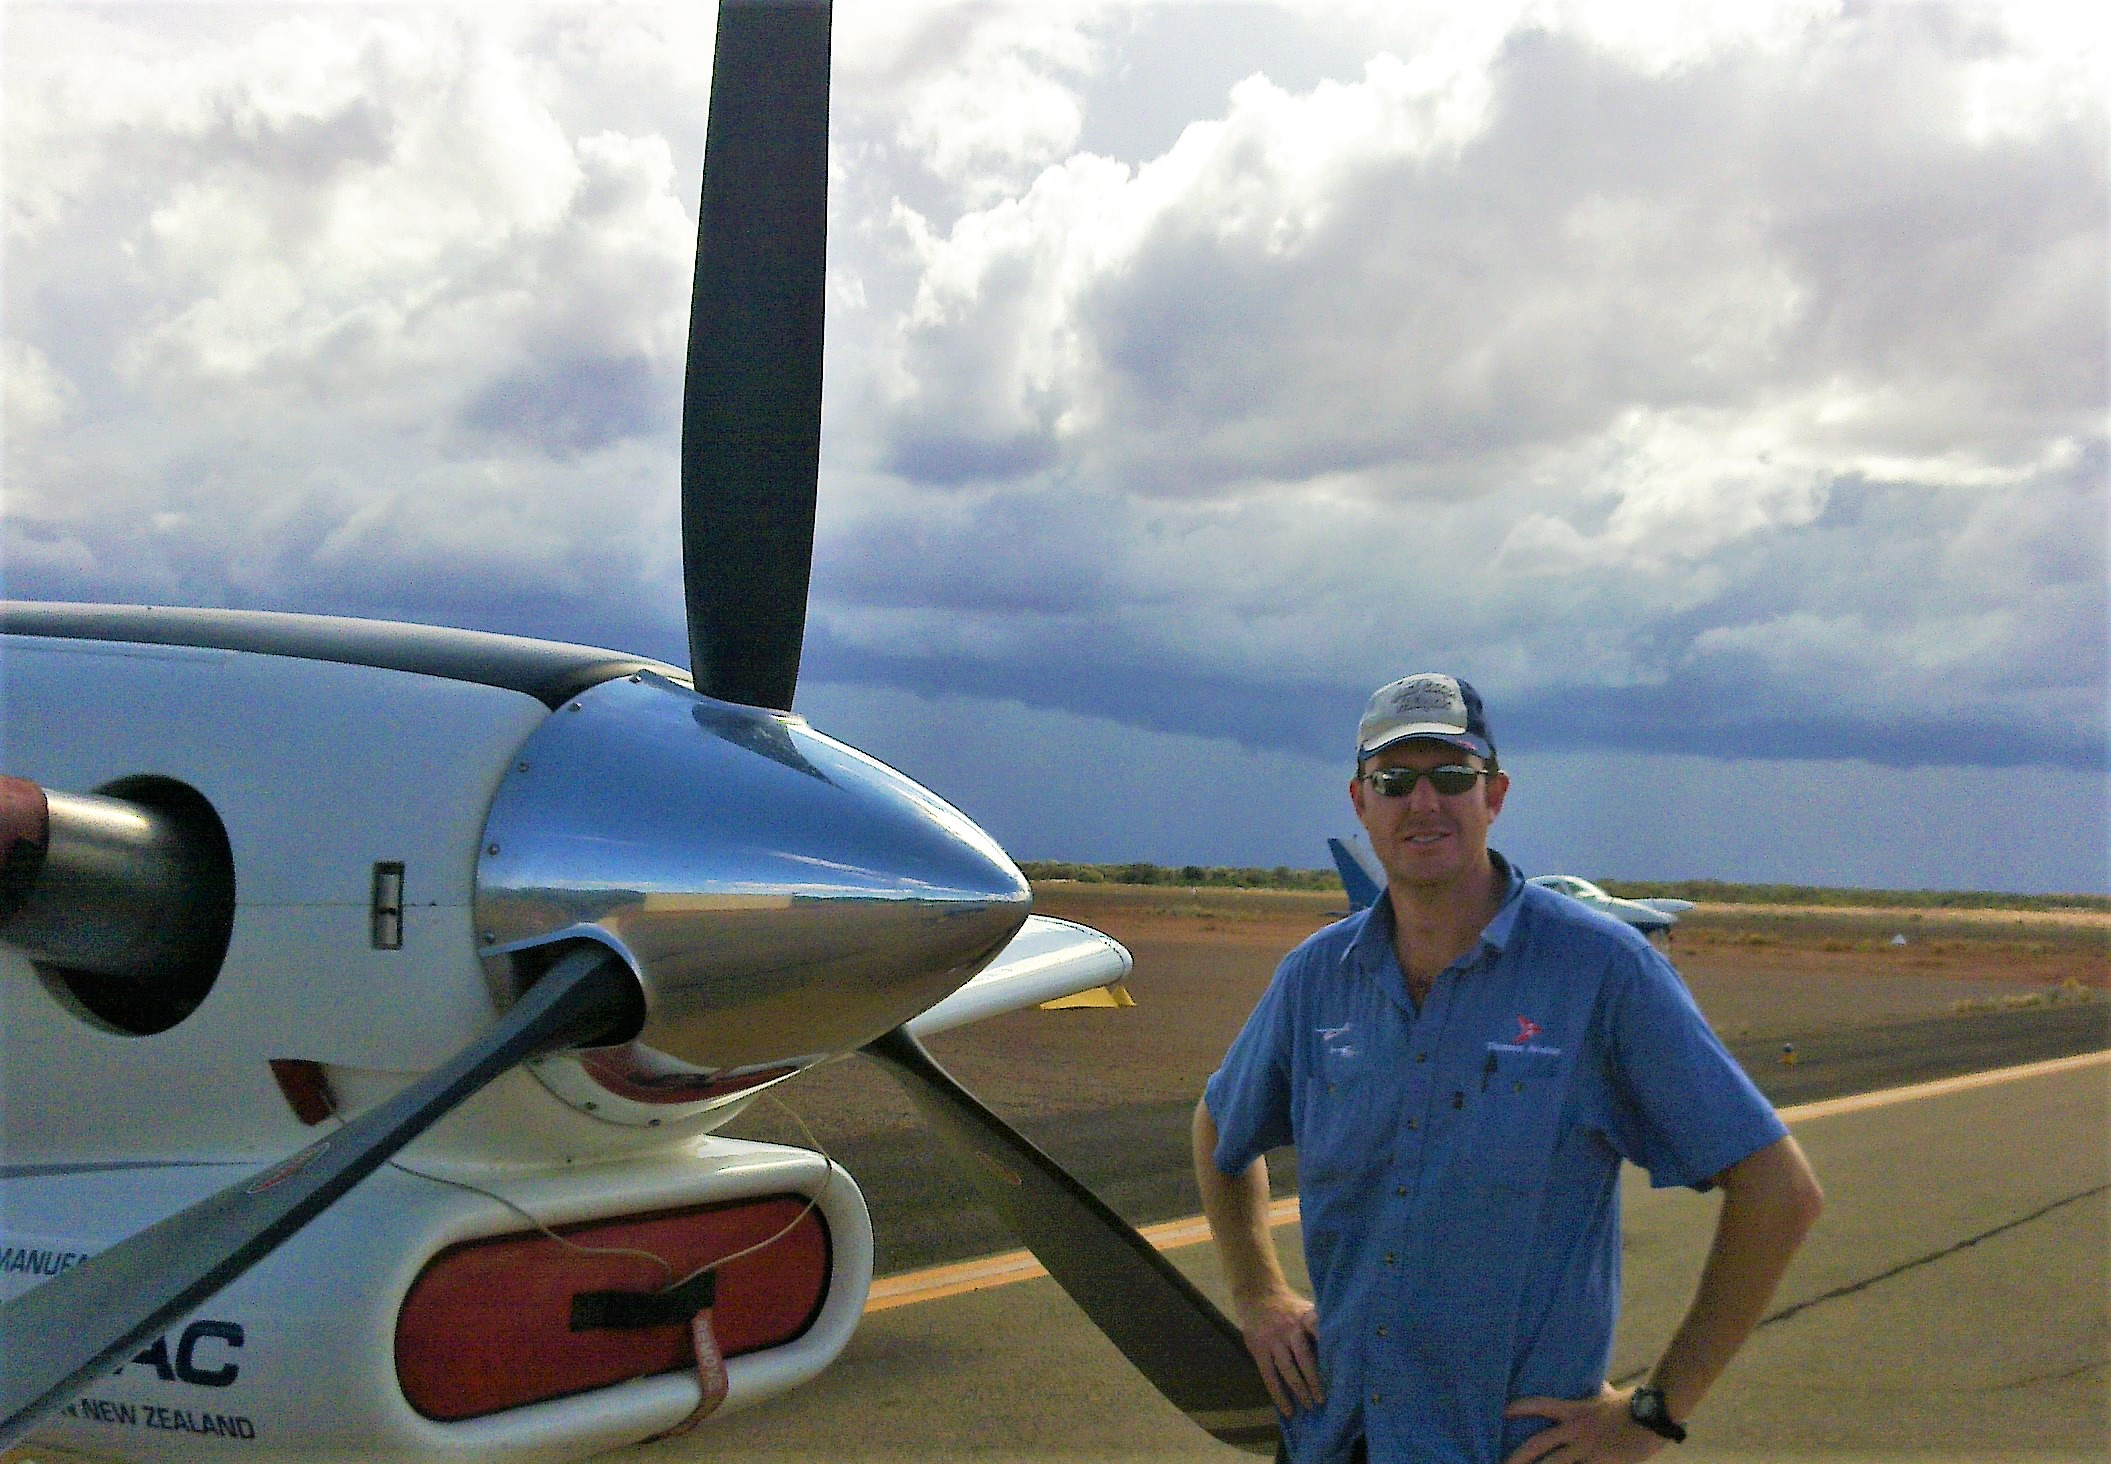 Chris with the PAC750XL in Leonora, Western Australia, 2012